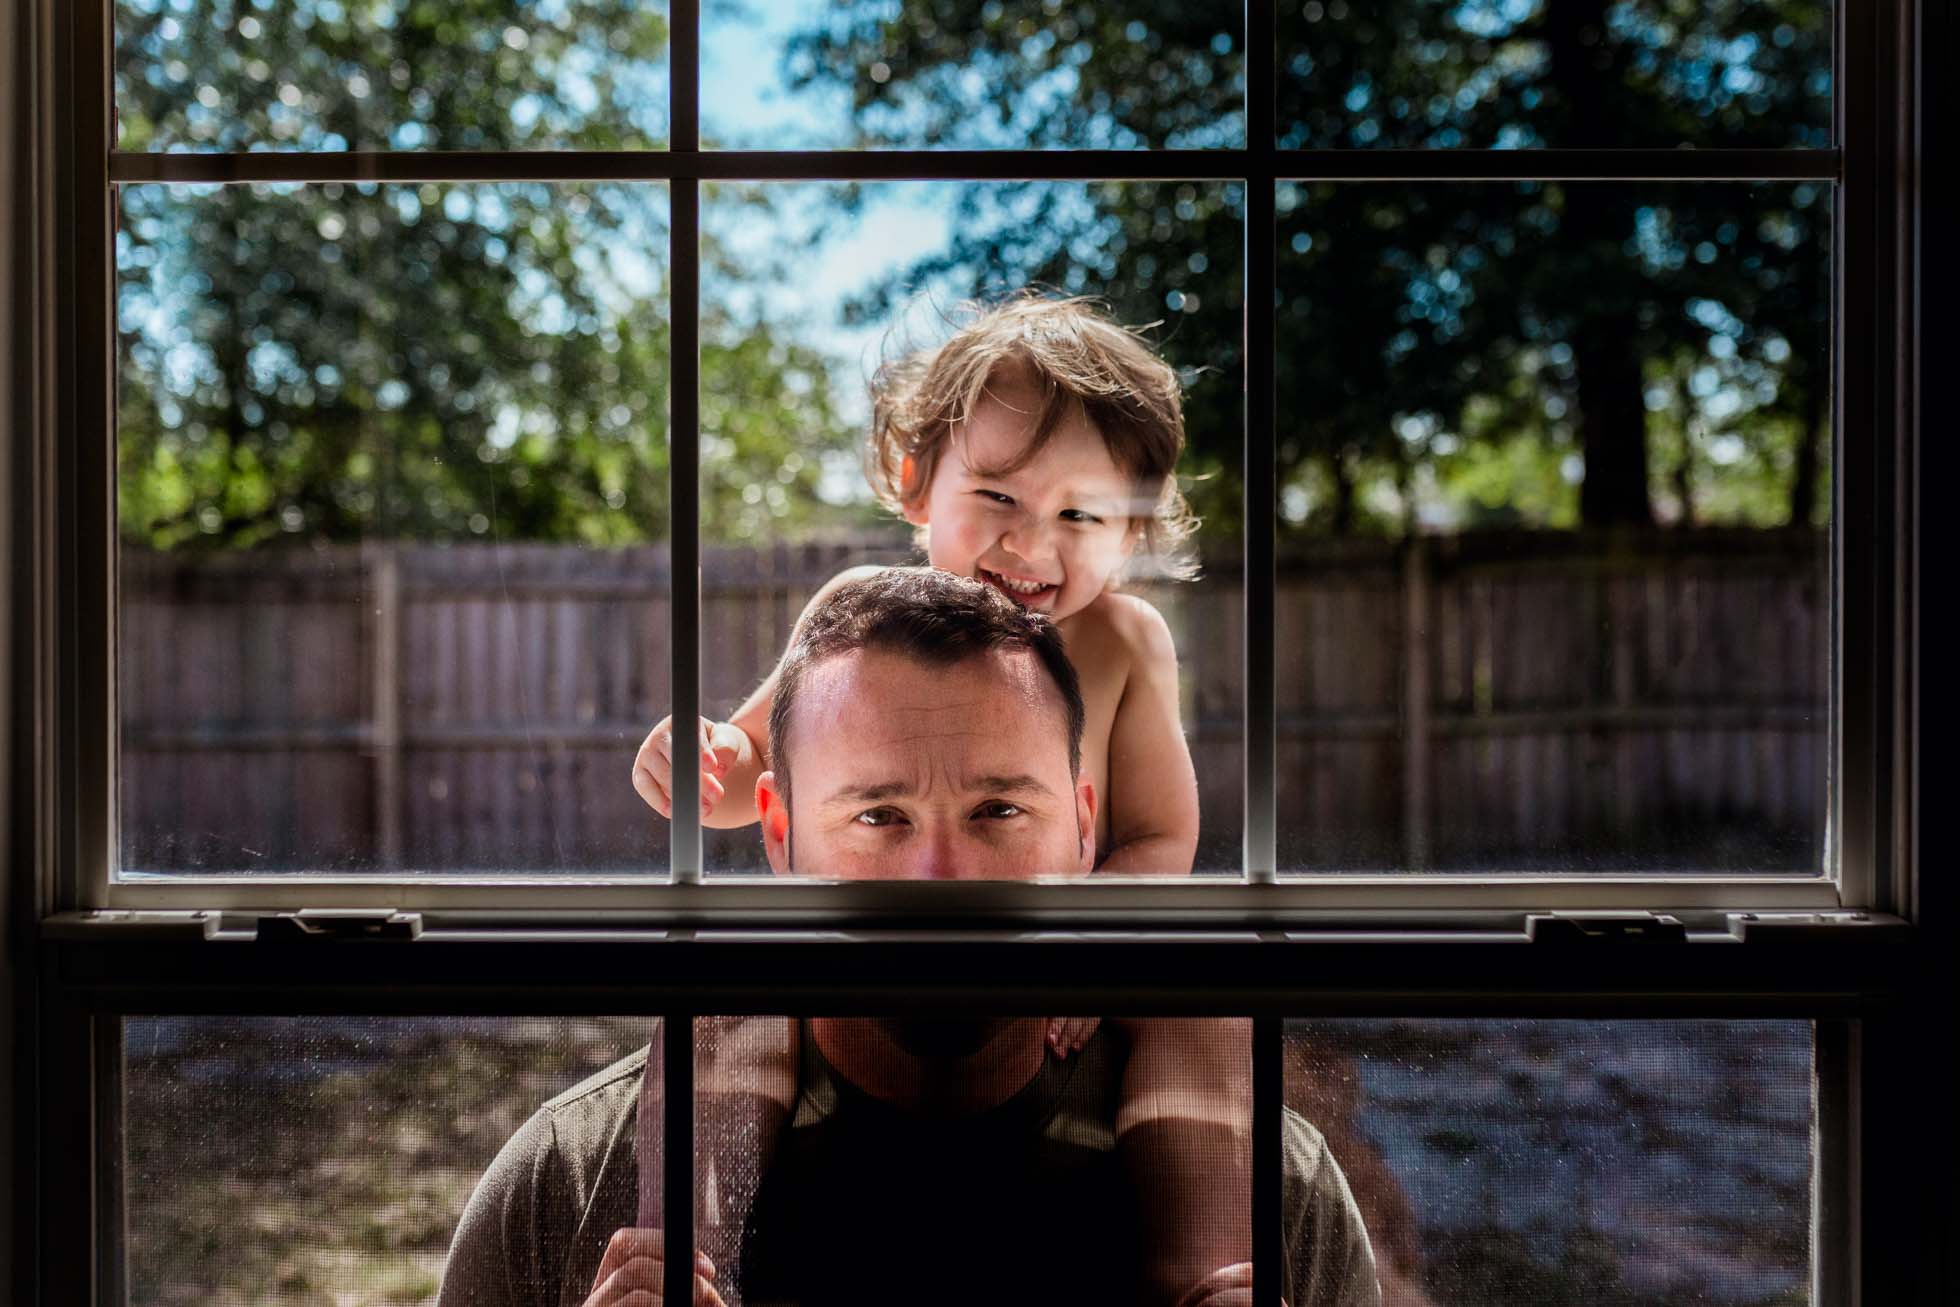 A dad and his son look through a window